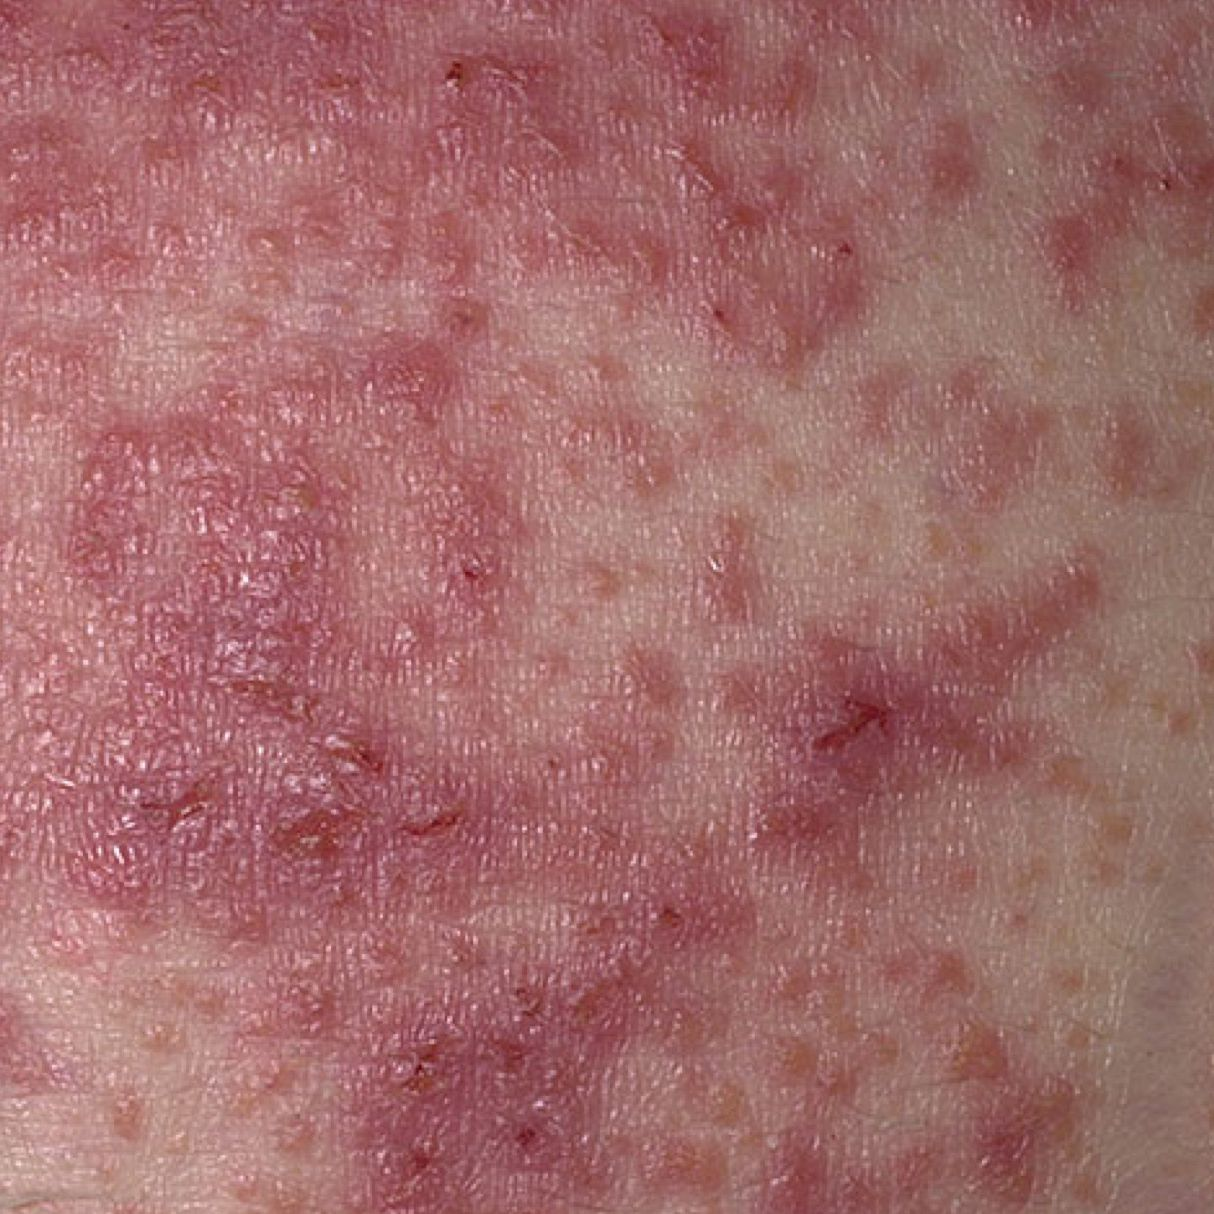 Dermatitis Herpetiformis (Celiac Disease Rash) Photos